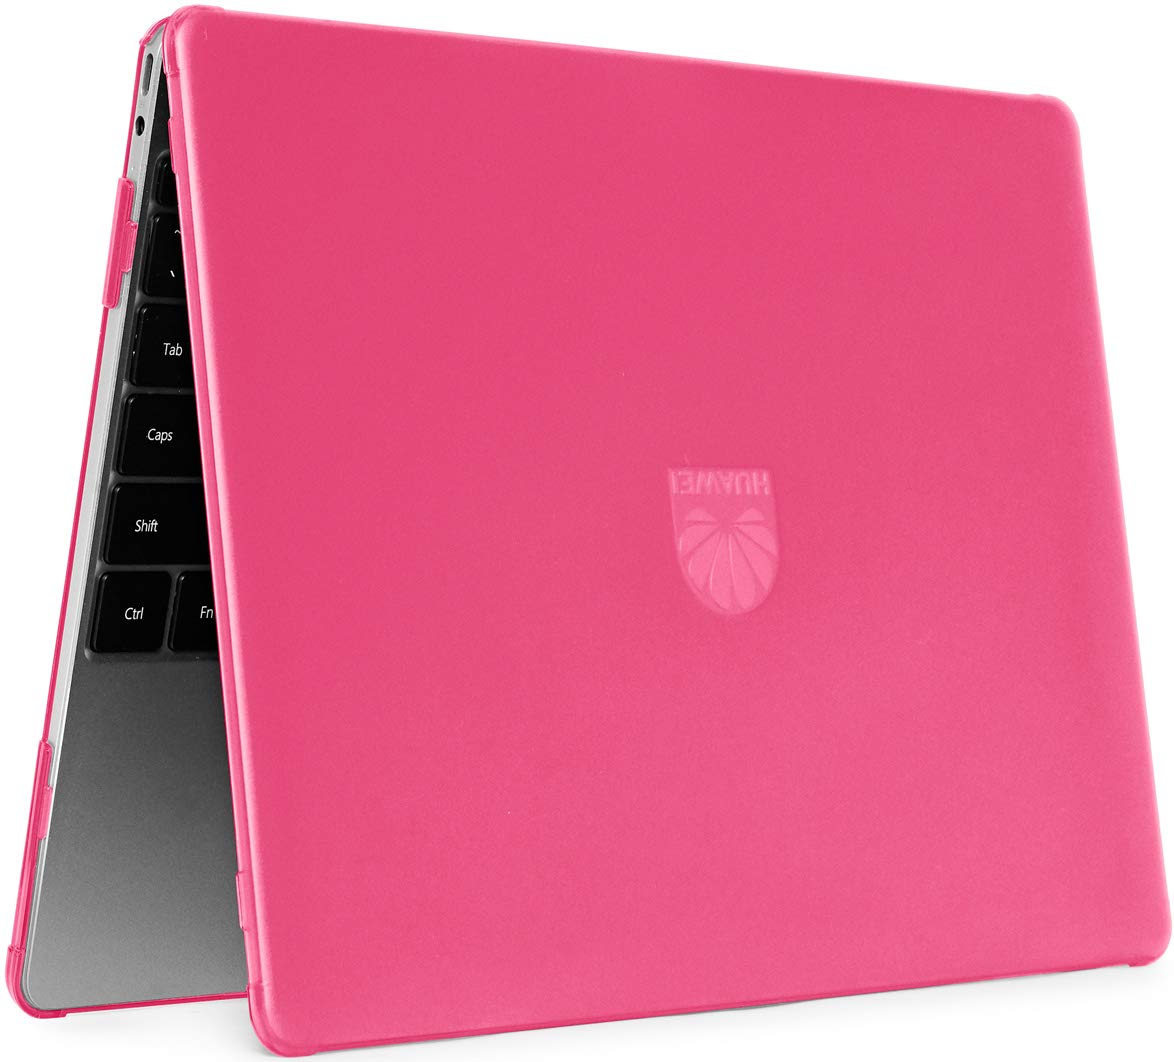 """mCover Hard Shell Case for Late-2018 13"""" Huawei MateBook 13 Series Laptop (HW-MateBook13 Pink)"""